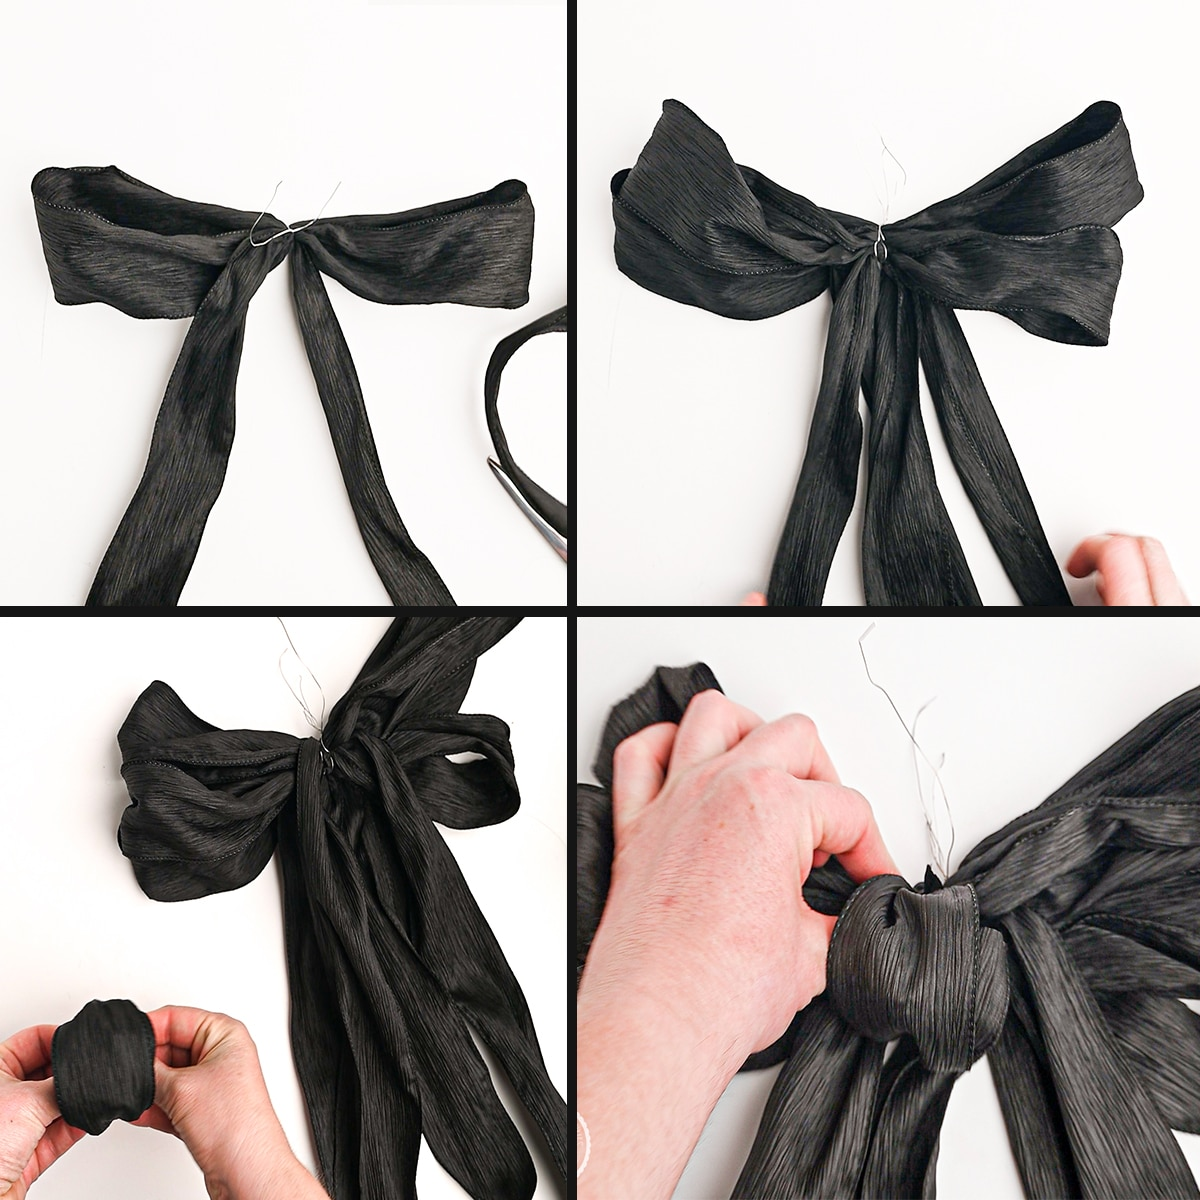 A four panel photograph of a black bow being made against a bright white background